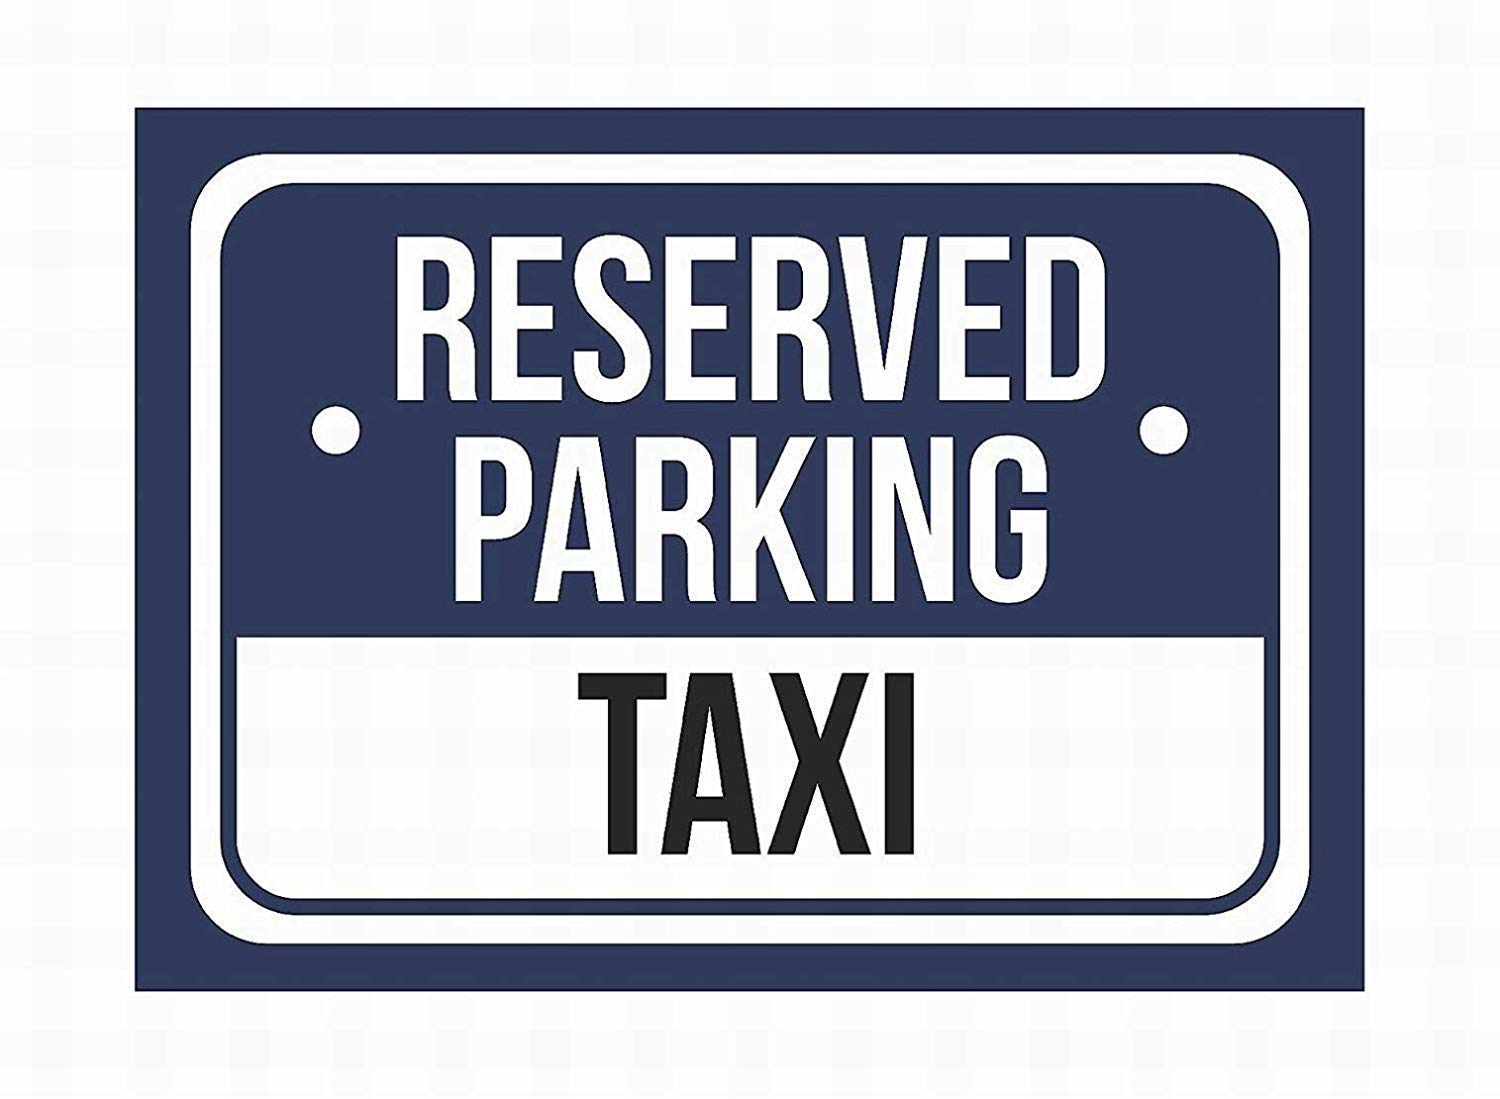 HALEY GAINES Reserved Parking Taxi Placa Cartel Póster de ...